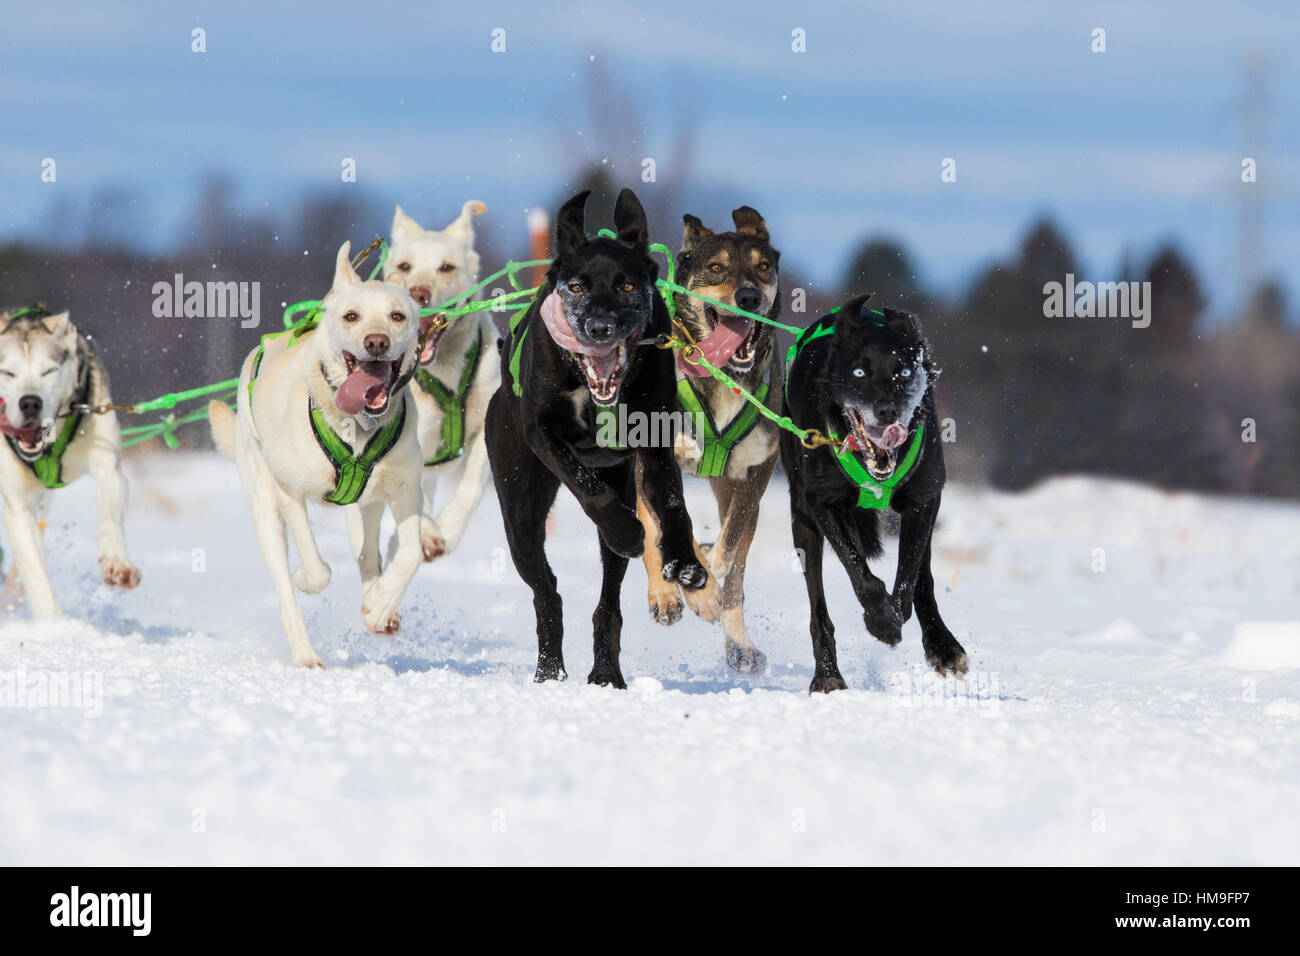 sledding dogs competition - Stock Image